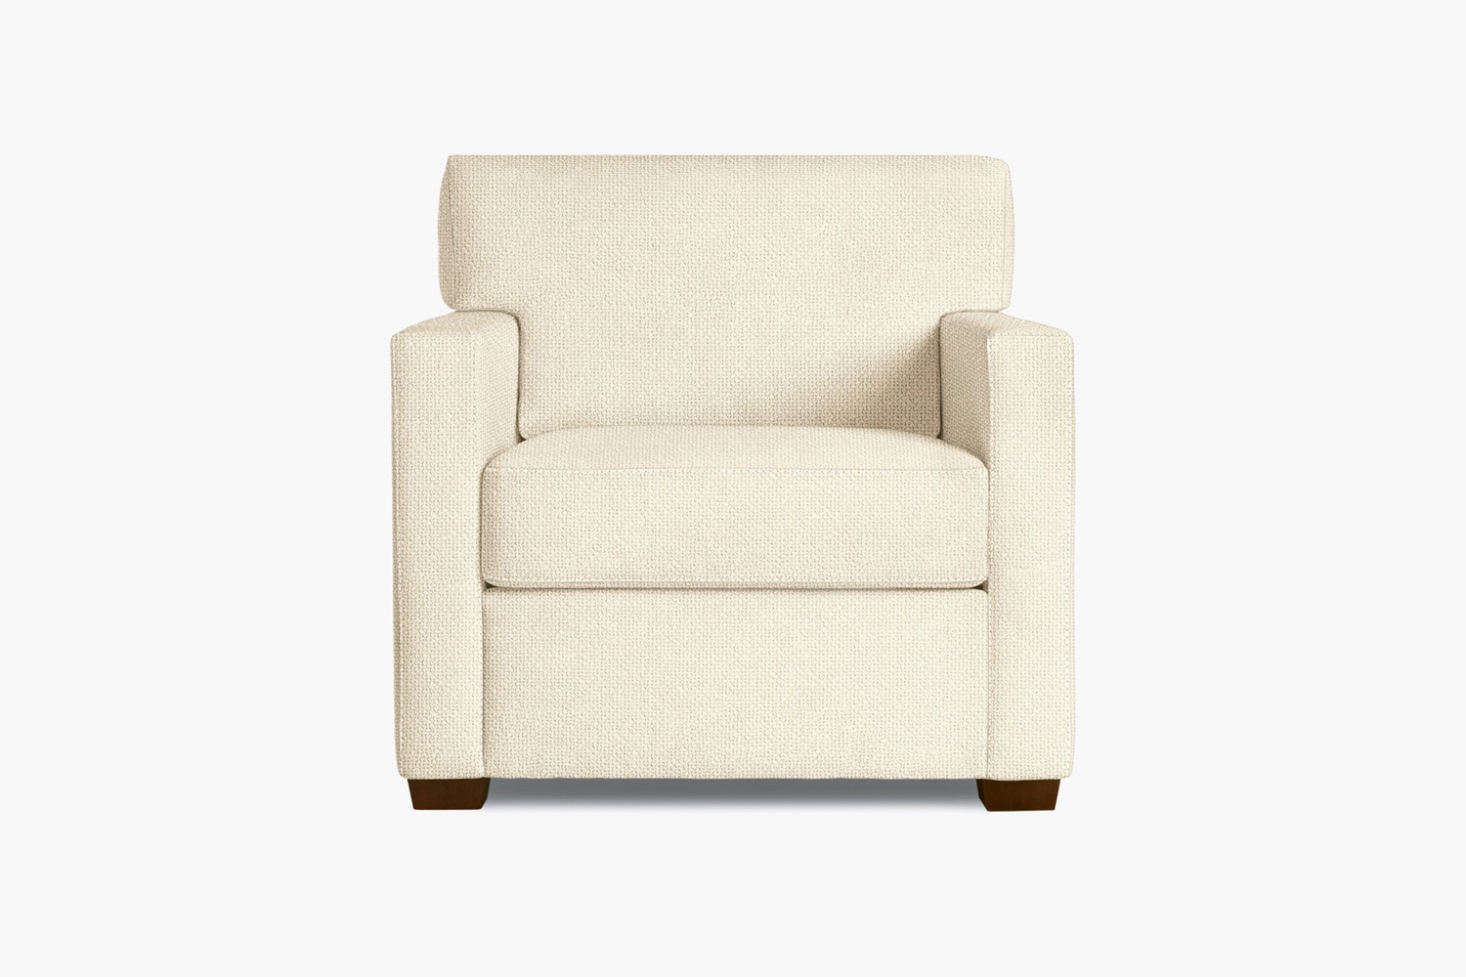 At Design Within Reach, the Vesper Armchair comes in a whole host of colors and fabric choices; starting at $